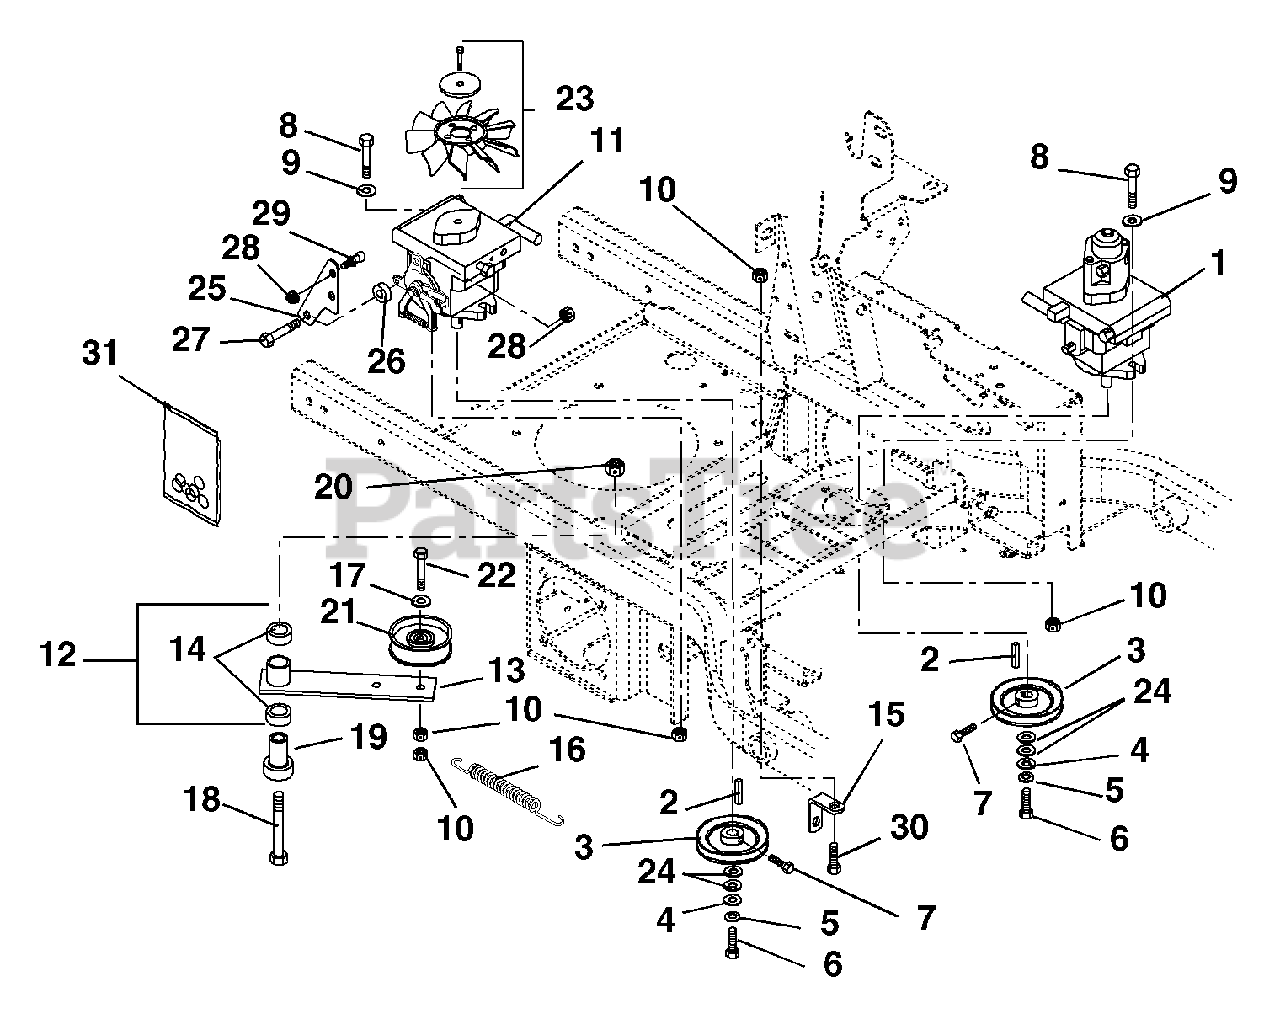 Gravely Parts On The Transmission Diagram For Pm